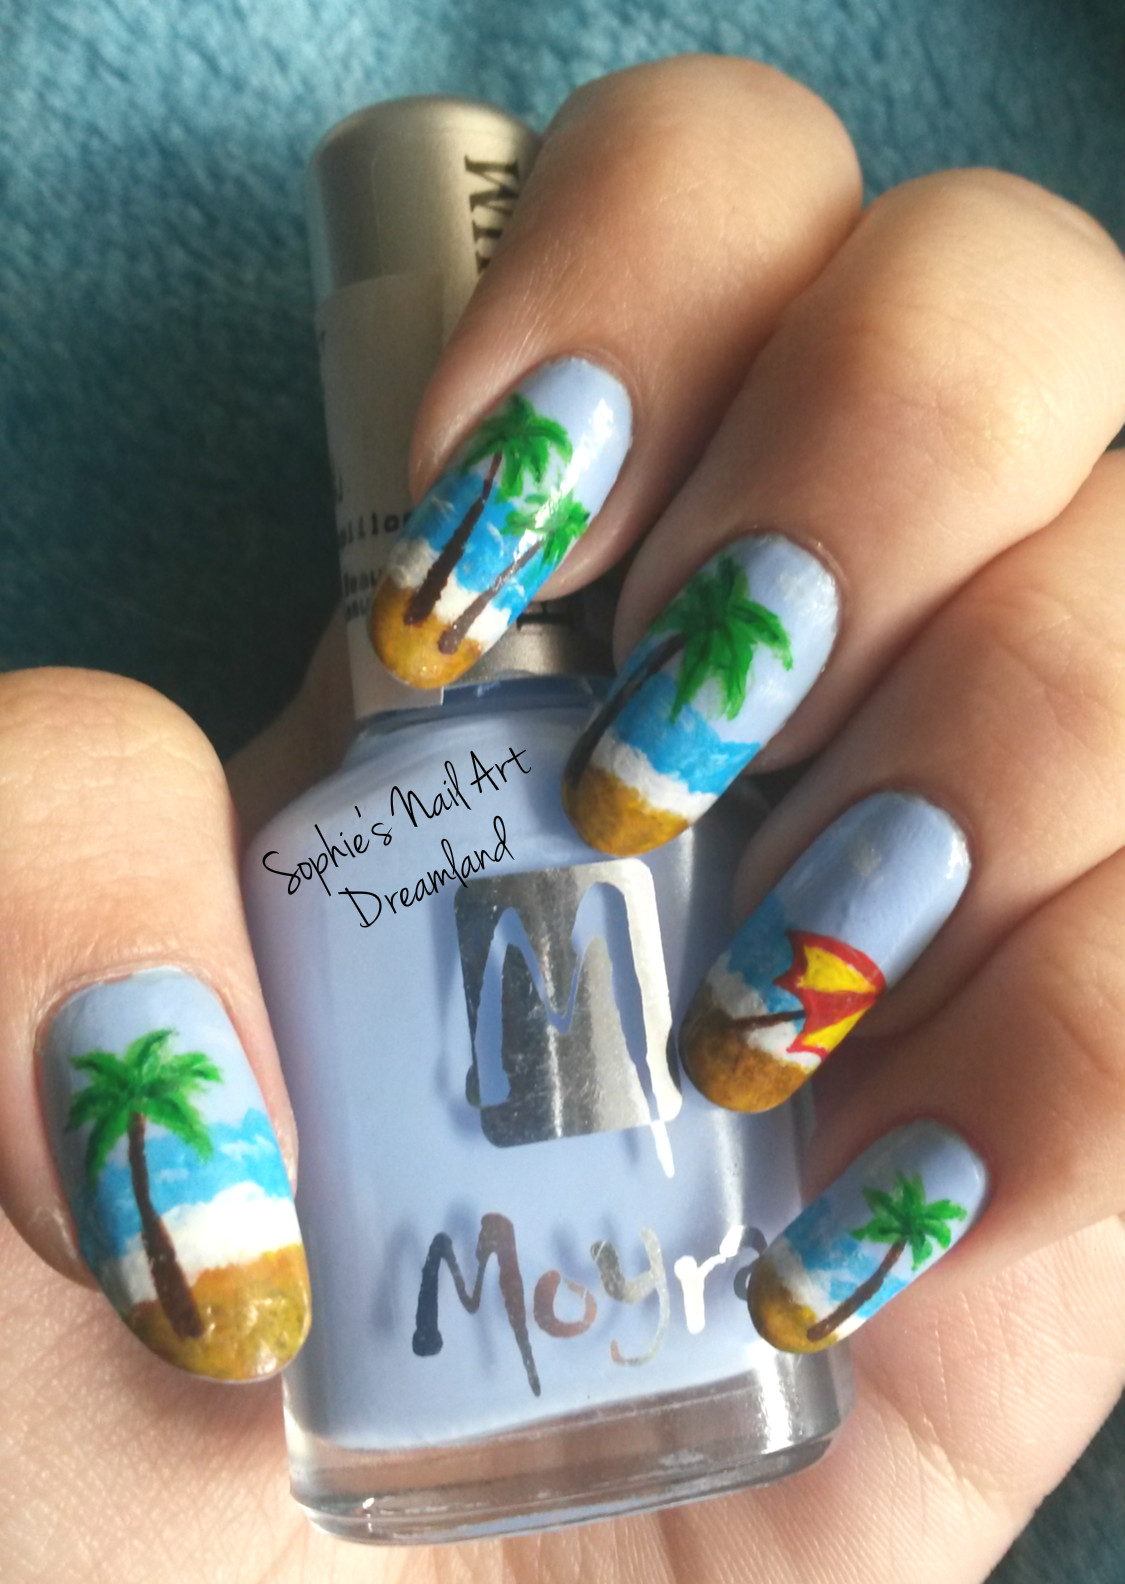 Nail Art Marathon 2015 - 4. Palm trees | Sophie\'s Nail Art Dreamland